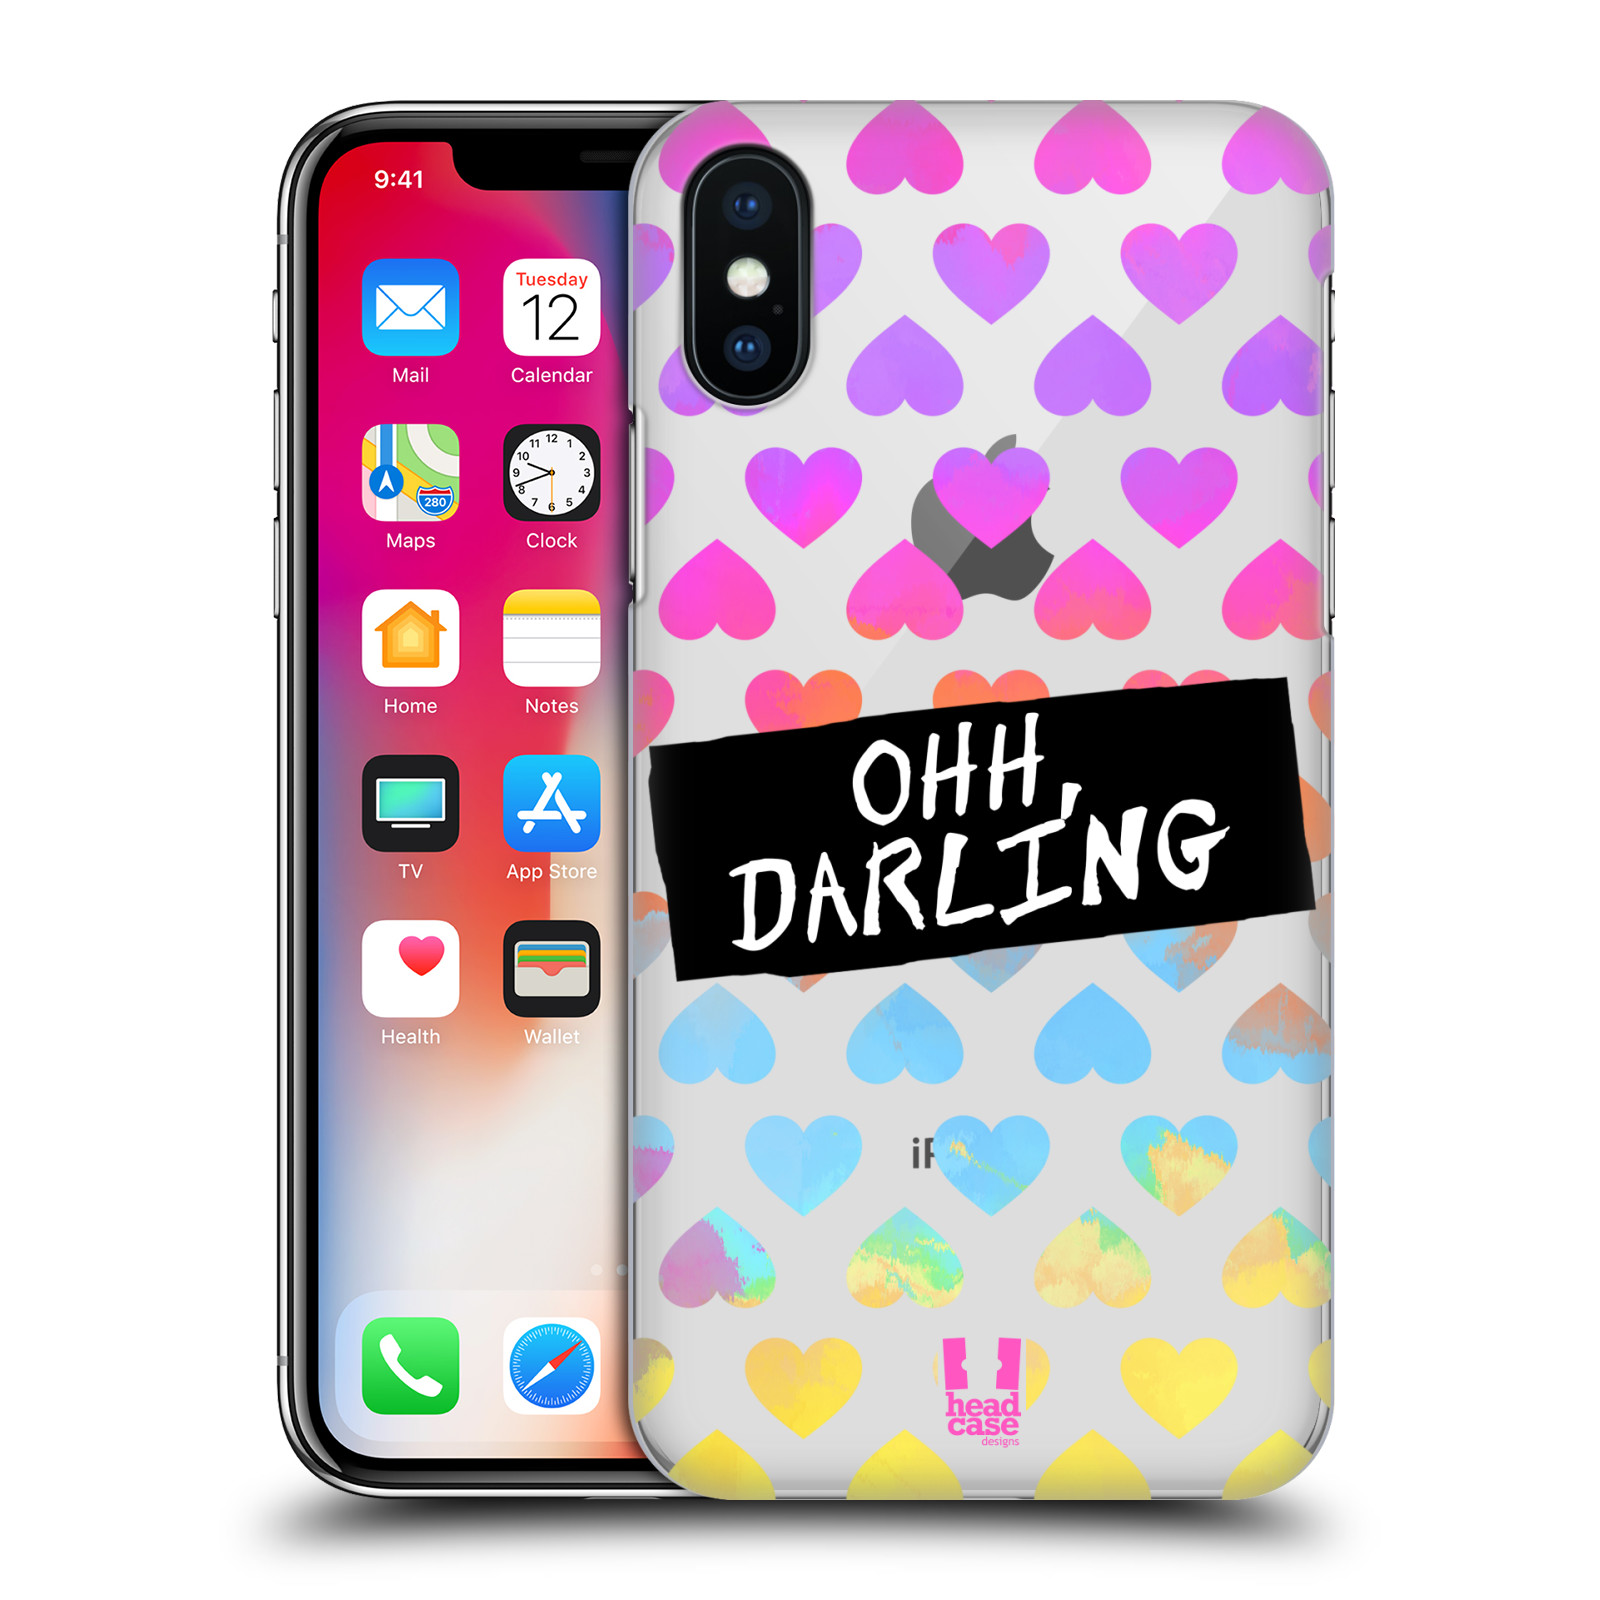 HEAD-CASE-DESIGNS-LOVELY-HEARTS-HARD-BACK-CASE-FOR-APPLE-iPHONE-X